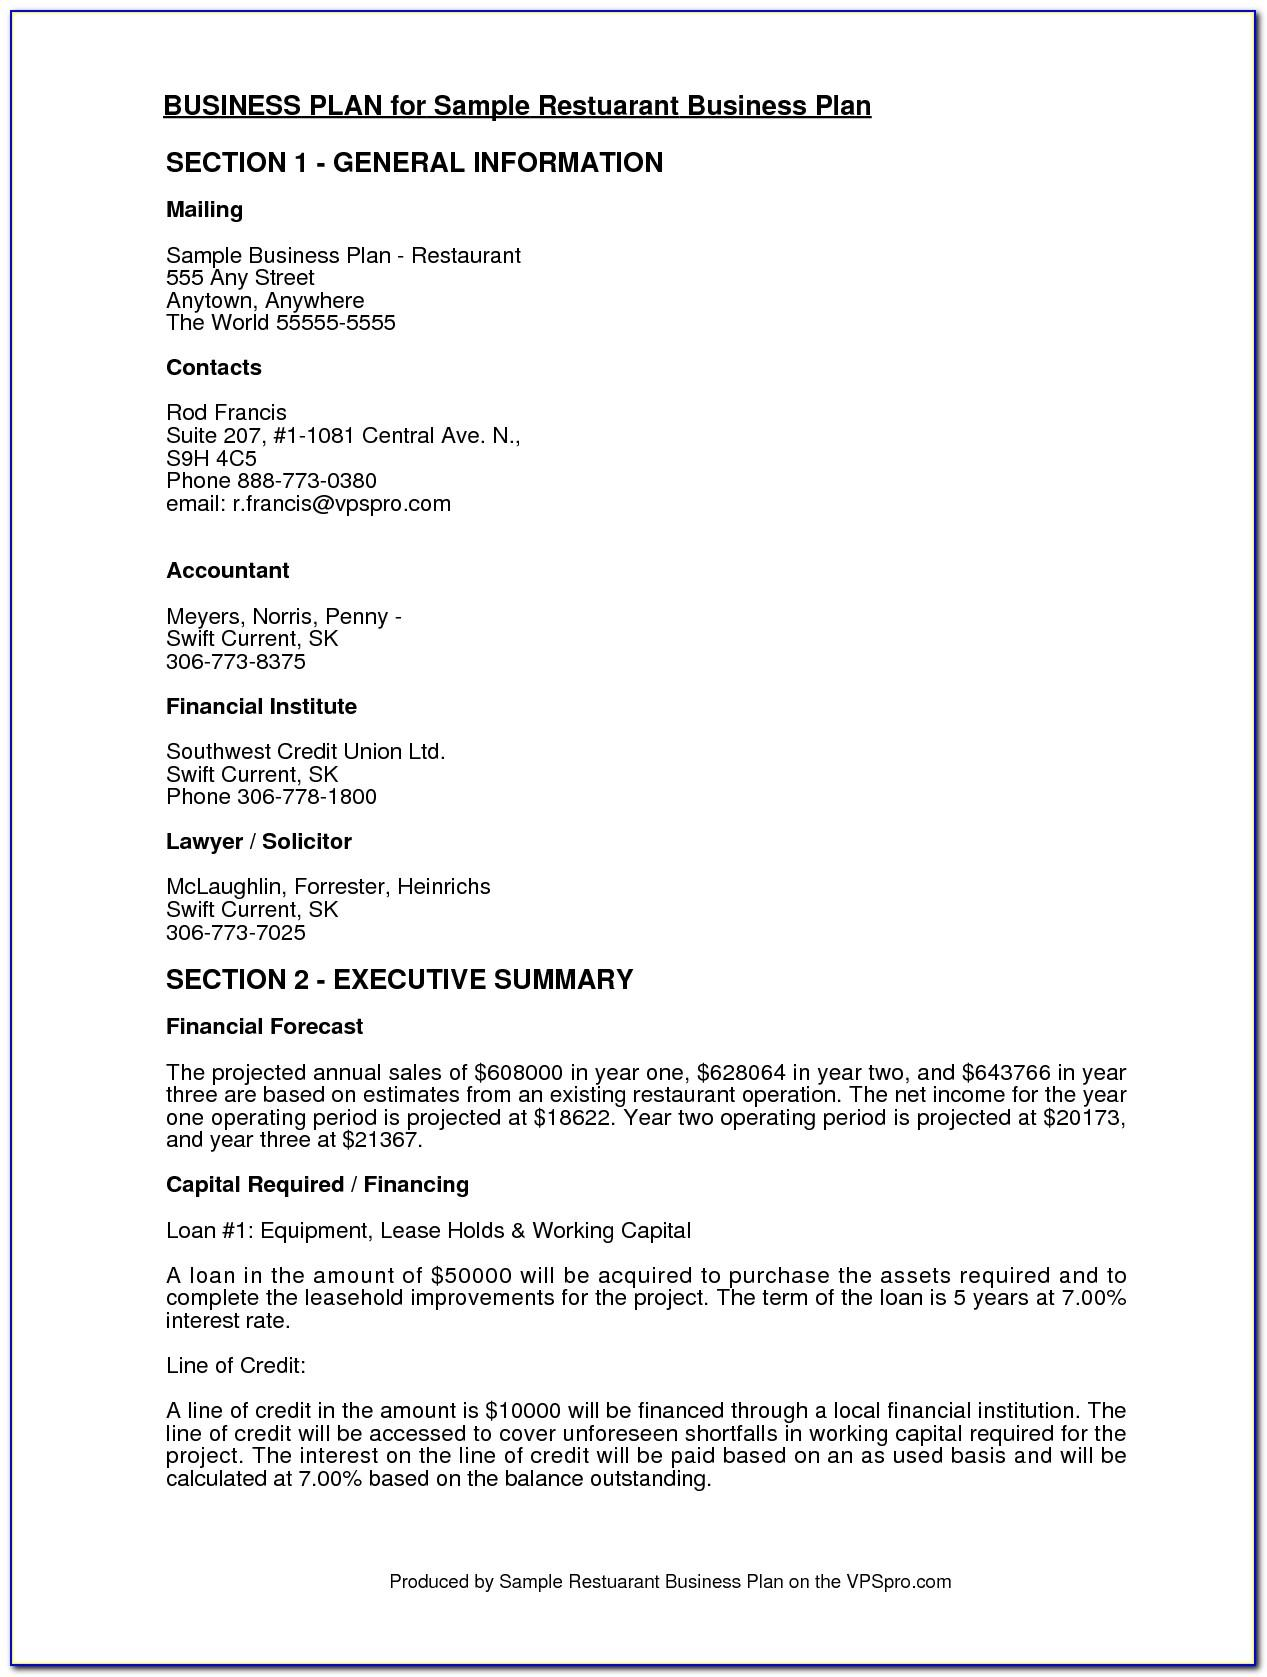 Master Franchise Agreement Template 2010